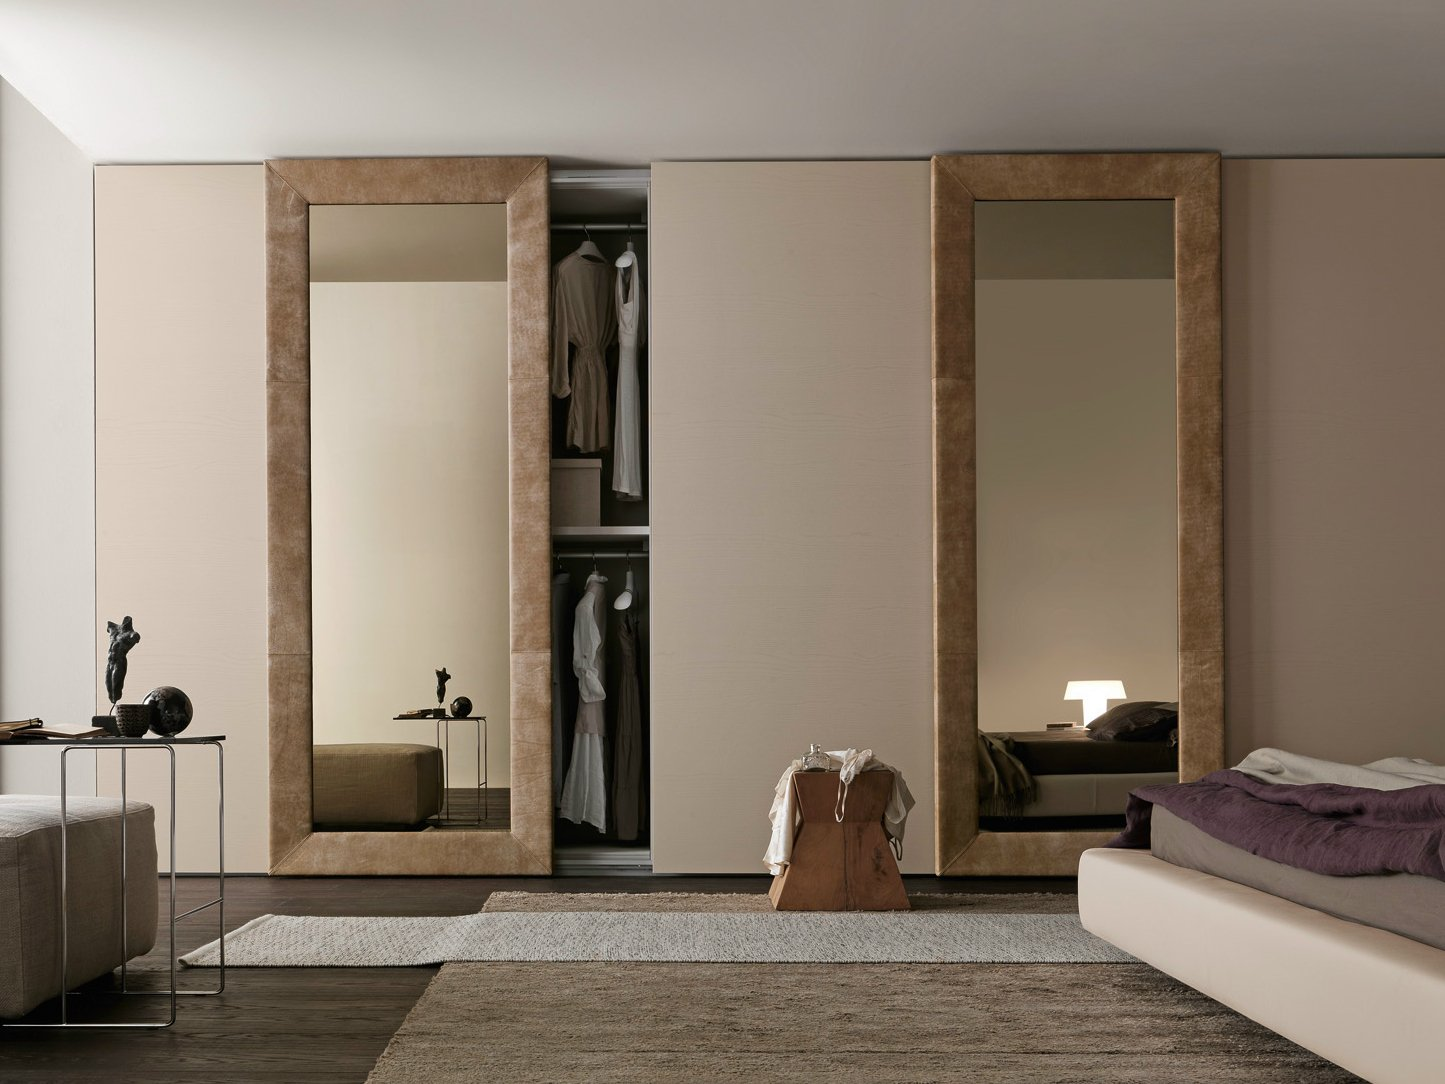 Sectional mirrored wardrobe with sliding doors mirror by for Sliding partitions